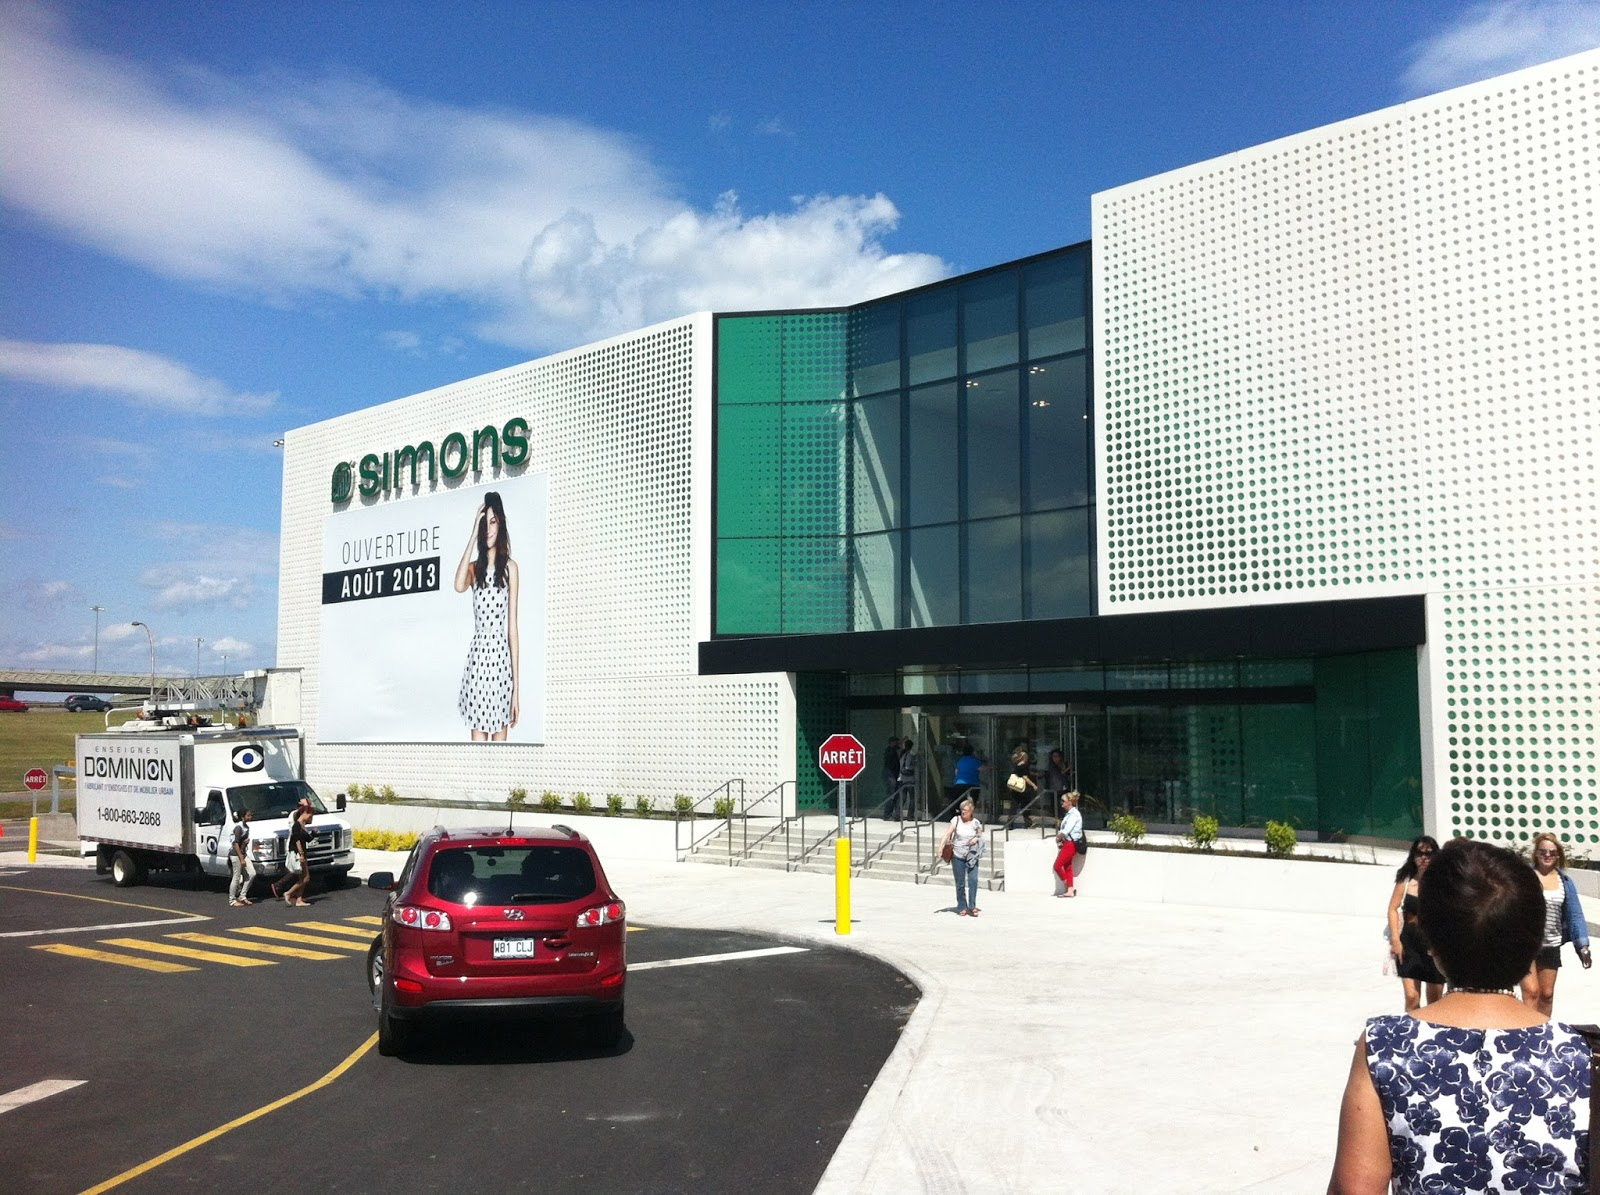 Reason #2: I got to check out a very special project held in collaboration between Simons and En Masse.